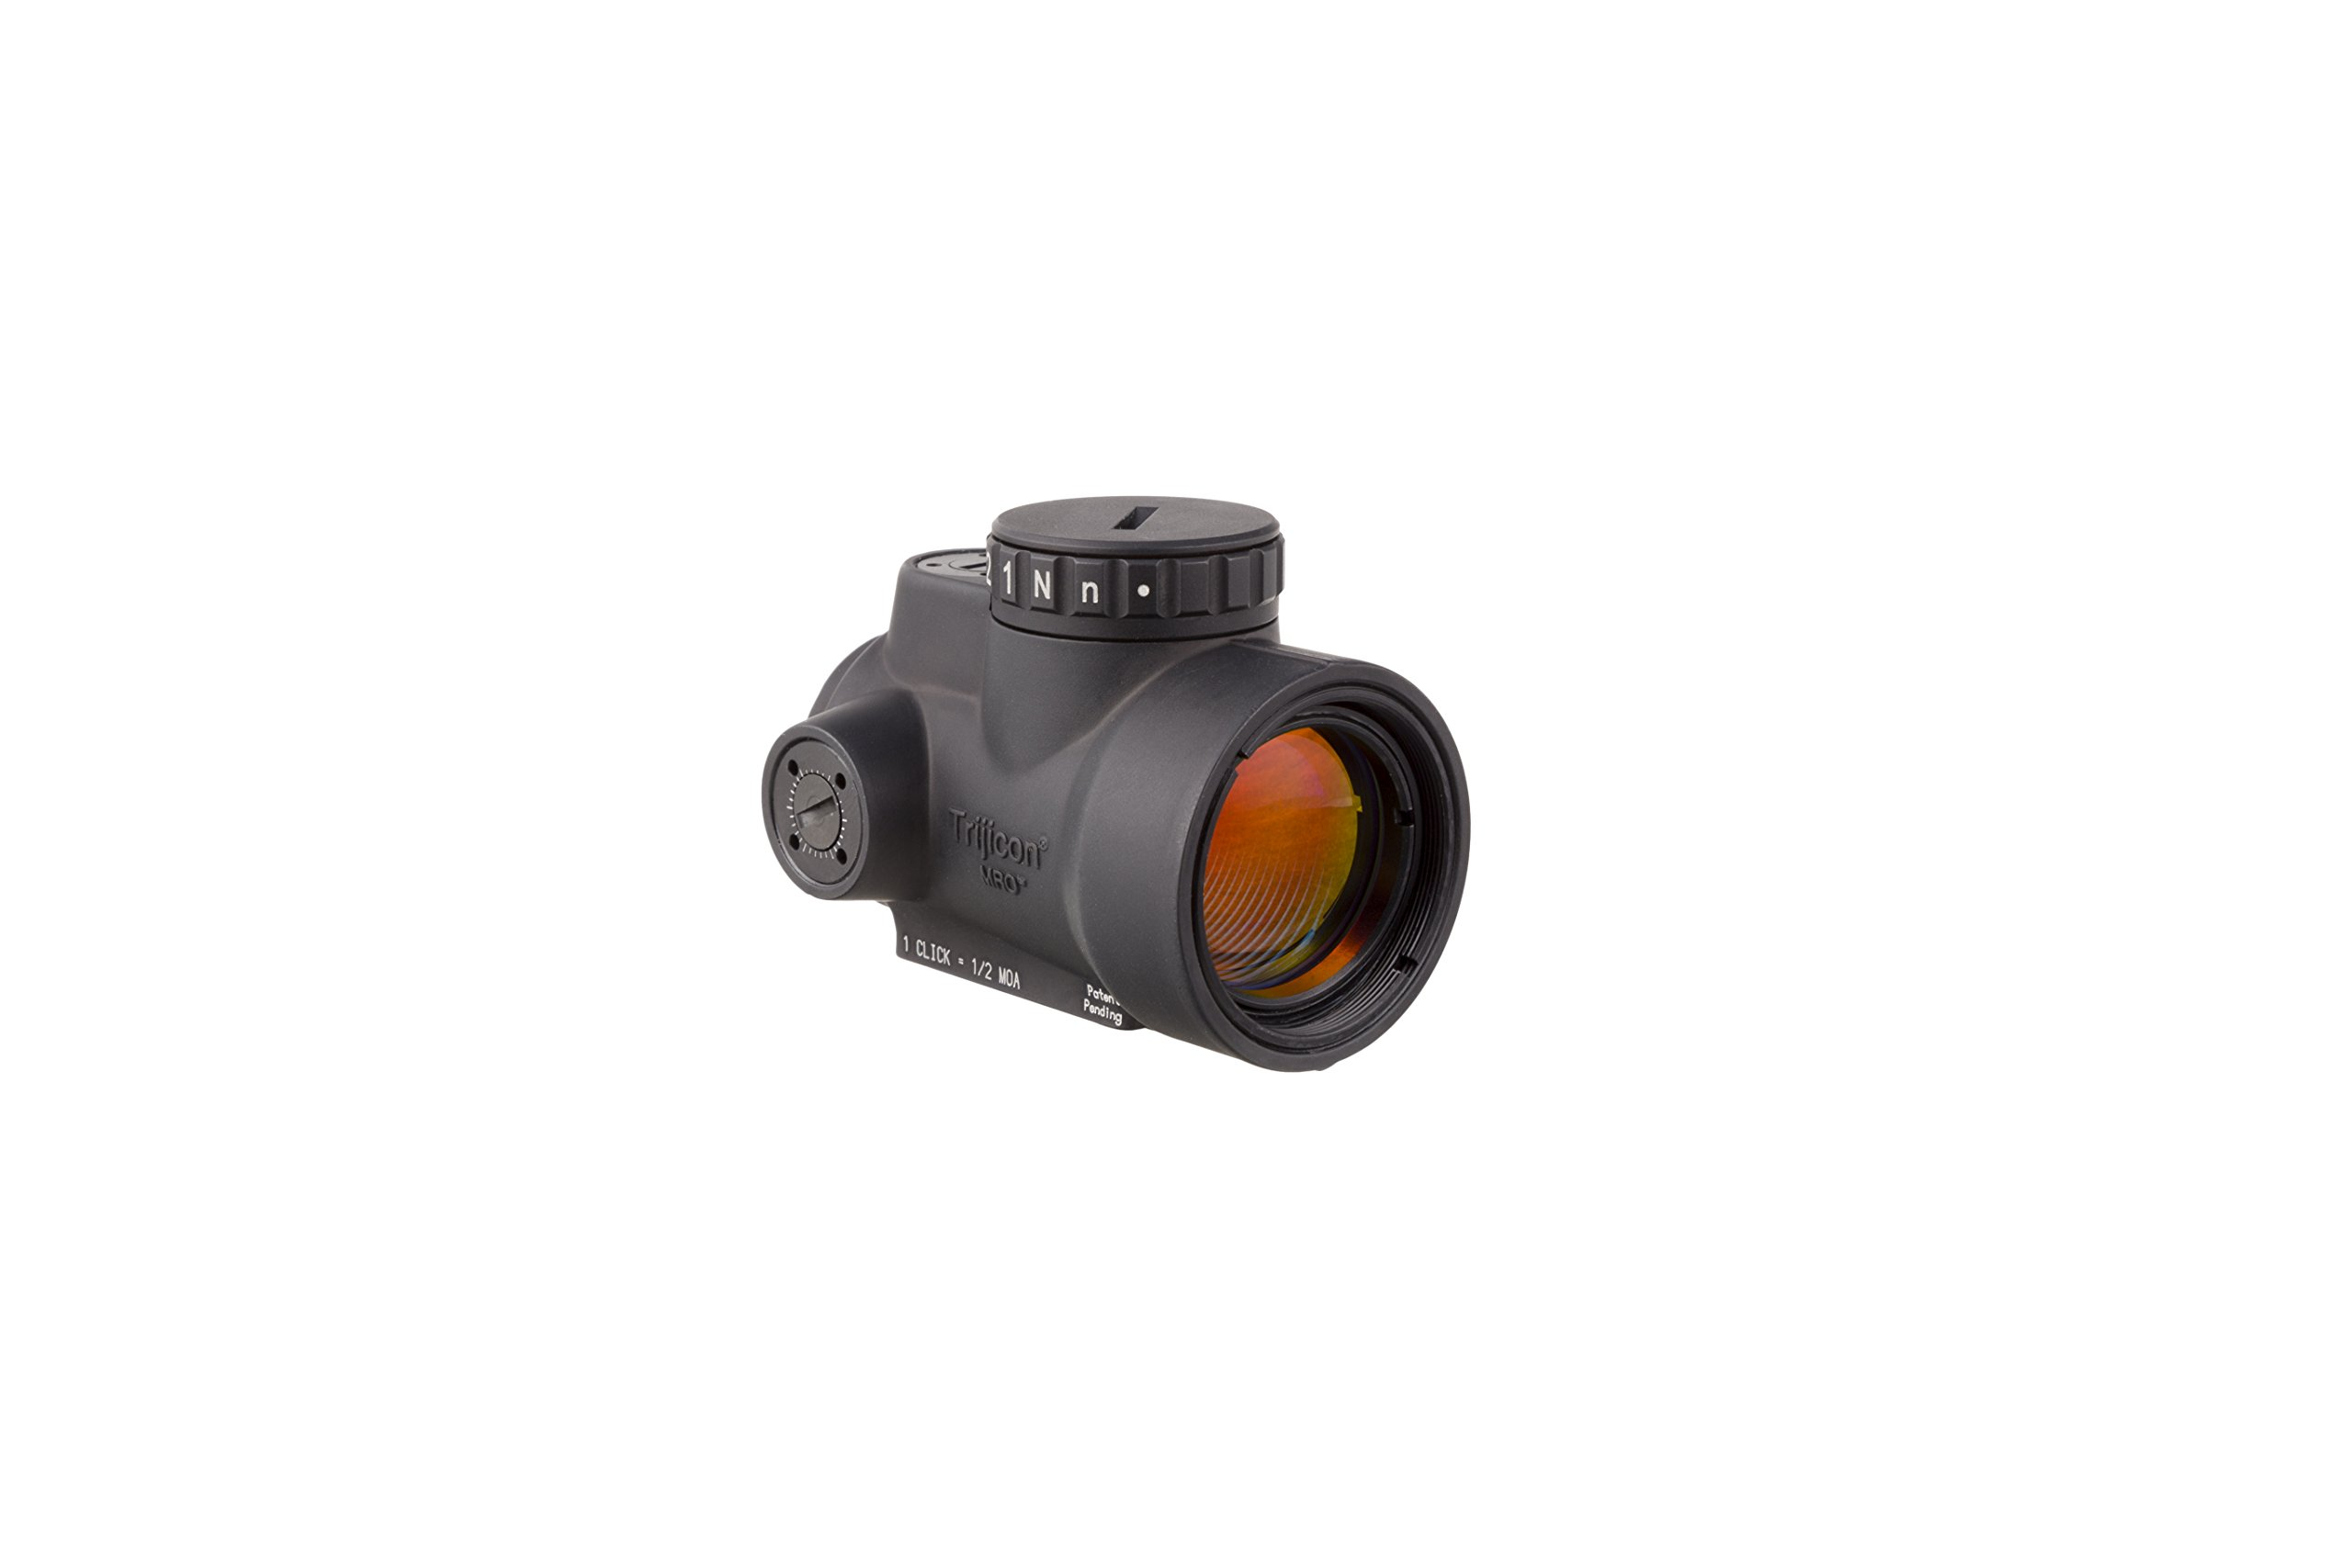 Trijicon MRO-C-2200003 1x25mm Miniature Rifle Optic (MRO) Riflescope with 2.0 MOA Adjustable Red Dot Reticle (Without Mount) by Trijicon (Image #2)